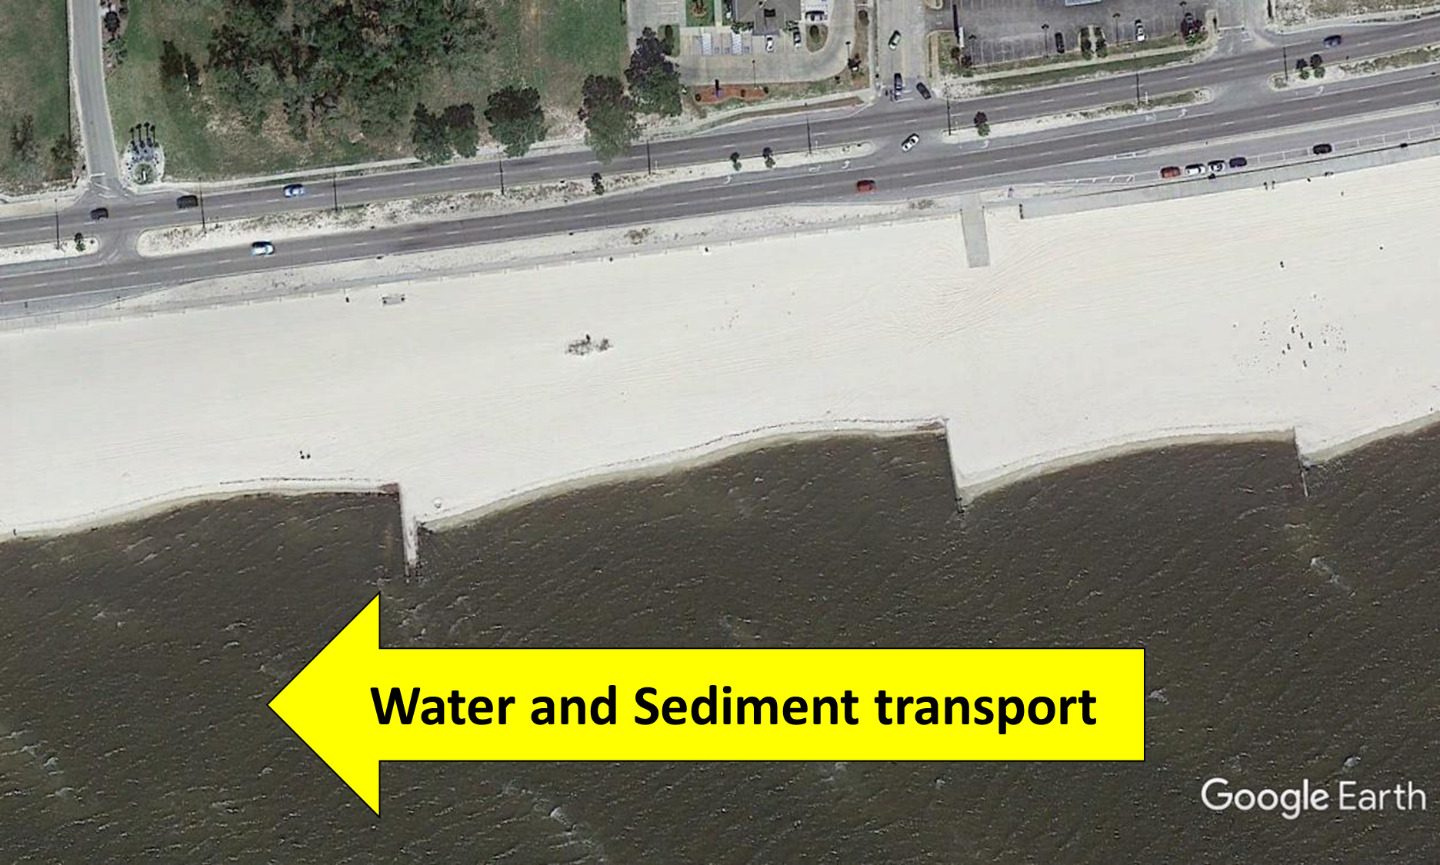 Biloxi Beach, Miss., 2017. Yellow arrow indicates general flow of water and sediment. Areas of abrupt shoreline change are caused by the presence of a beach outfall pipe and its interaction with the flow of water and sediment. Imagery: Google Earth.